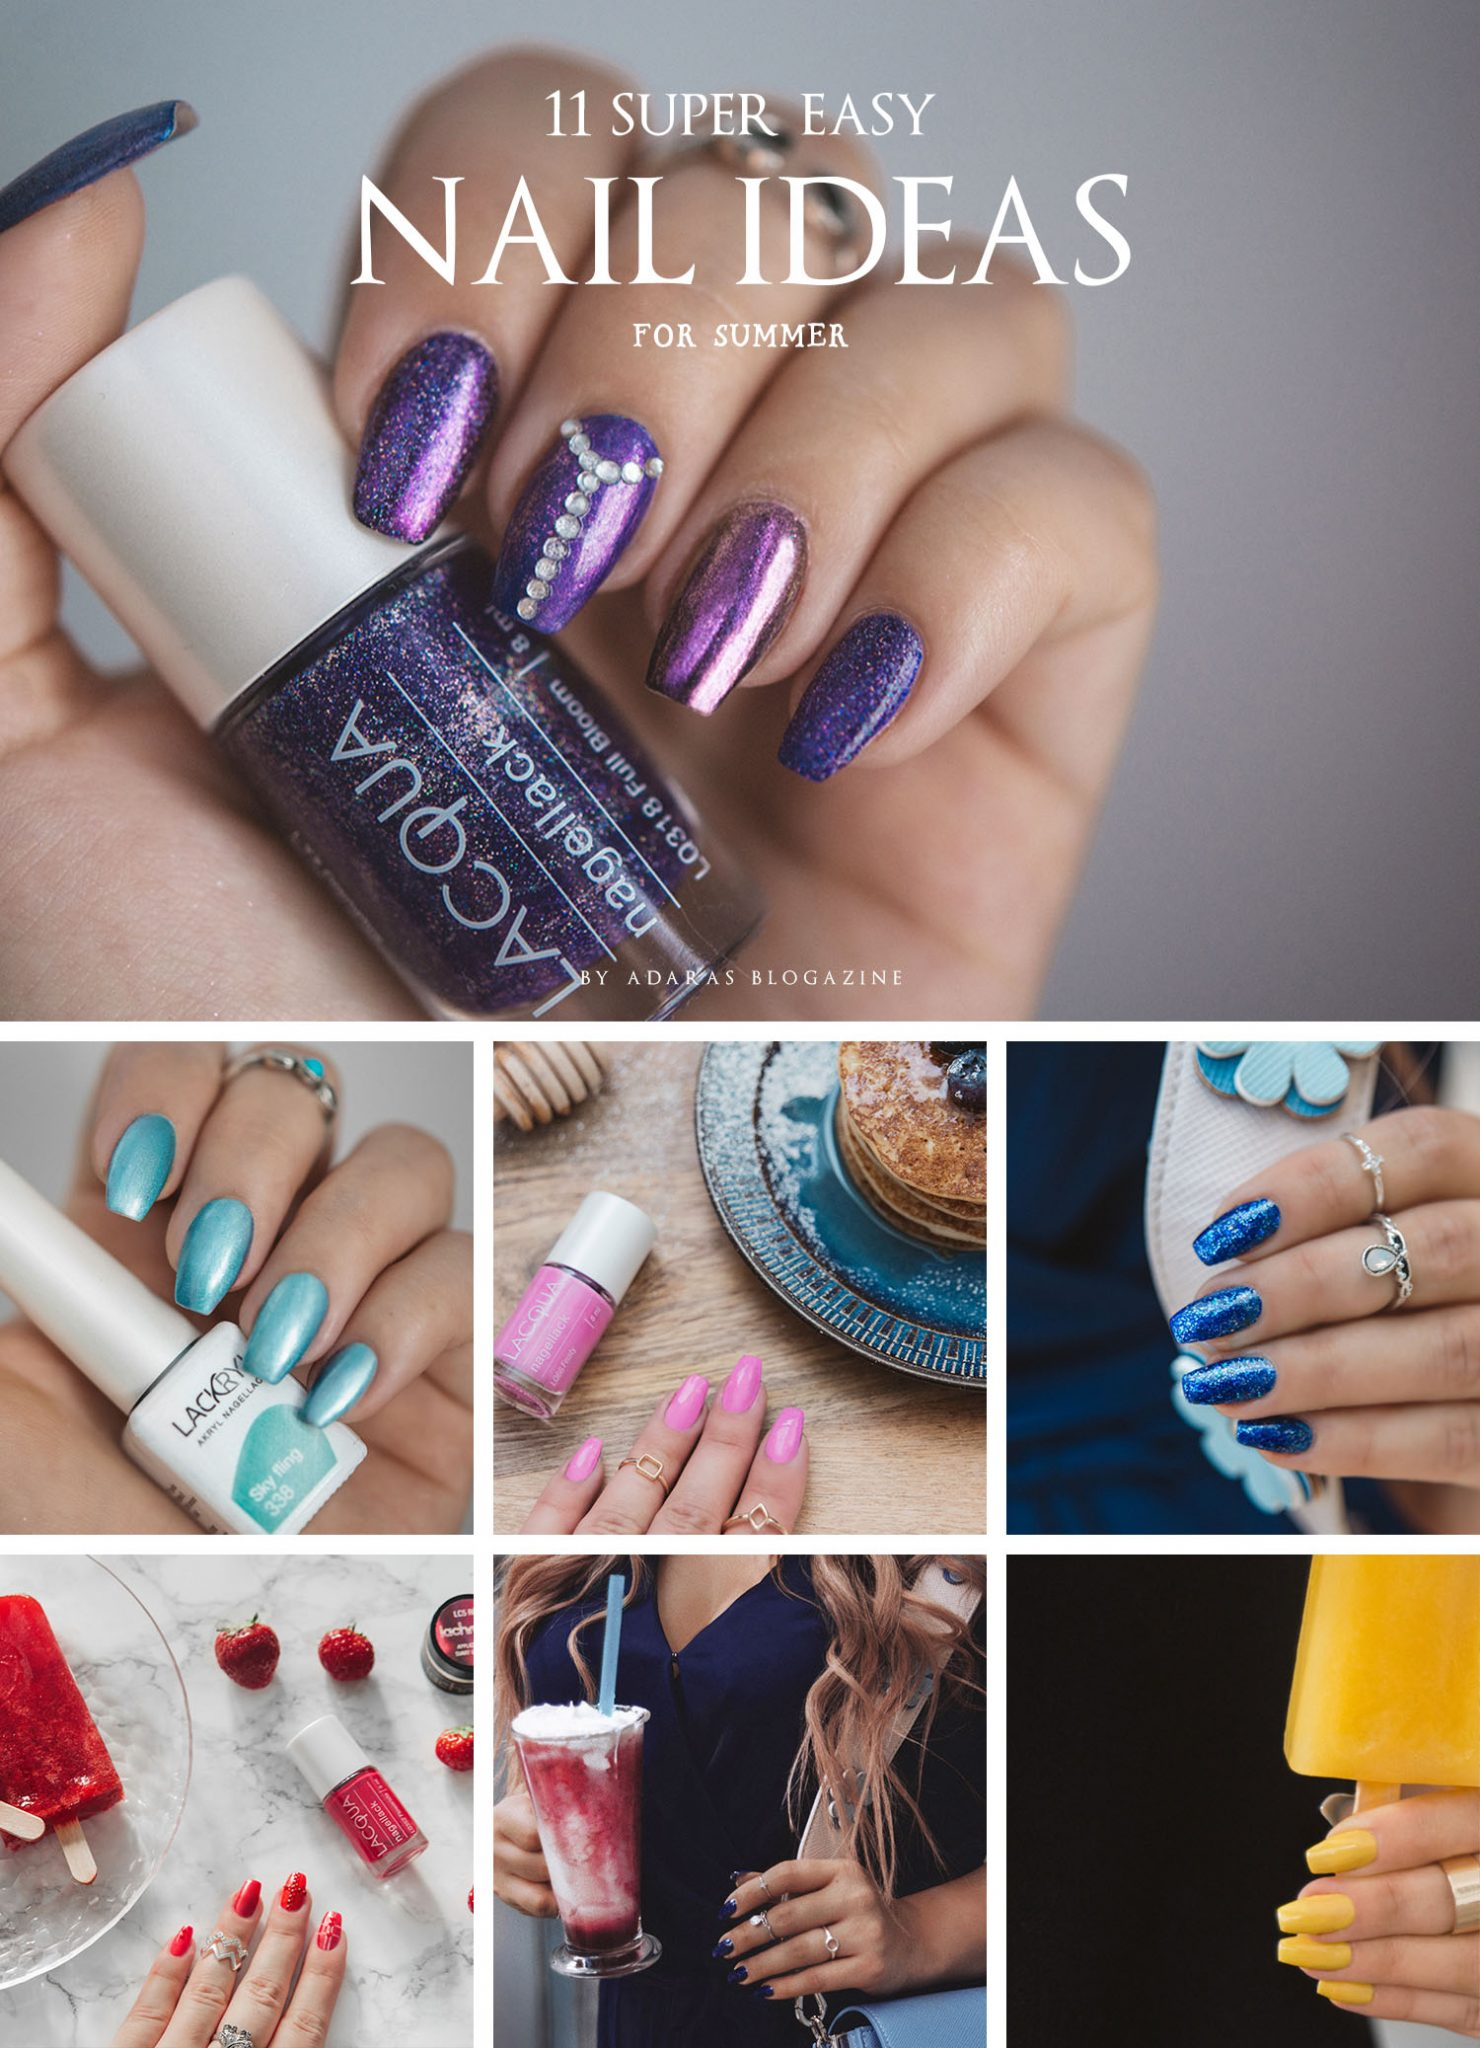 11 Easy Nail Ideas for Summer ⋆ ADARAS Blogazine